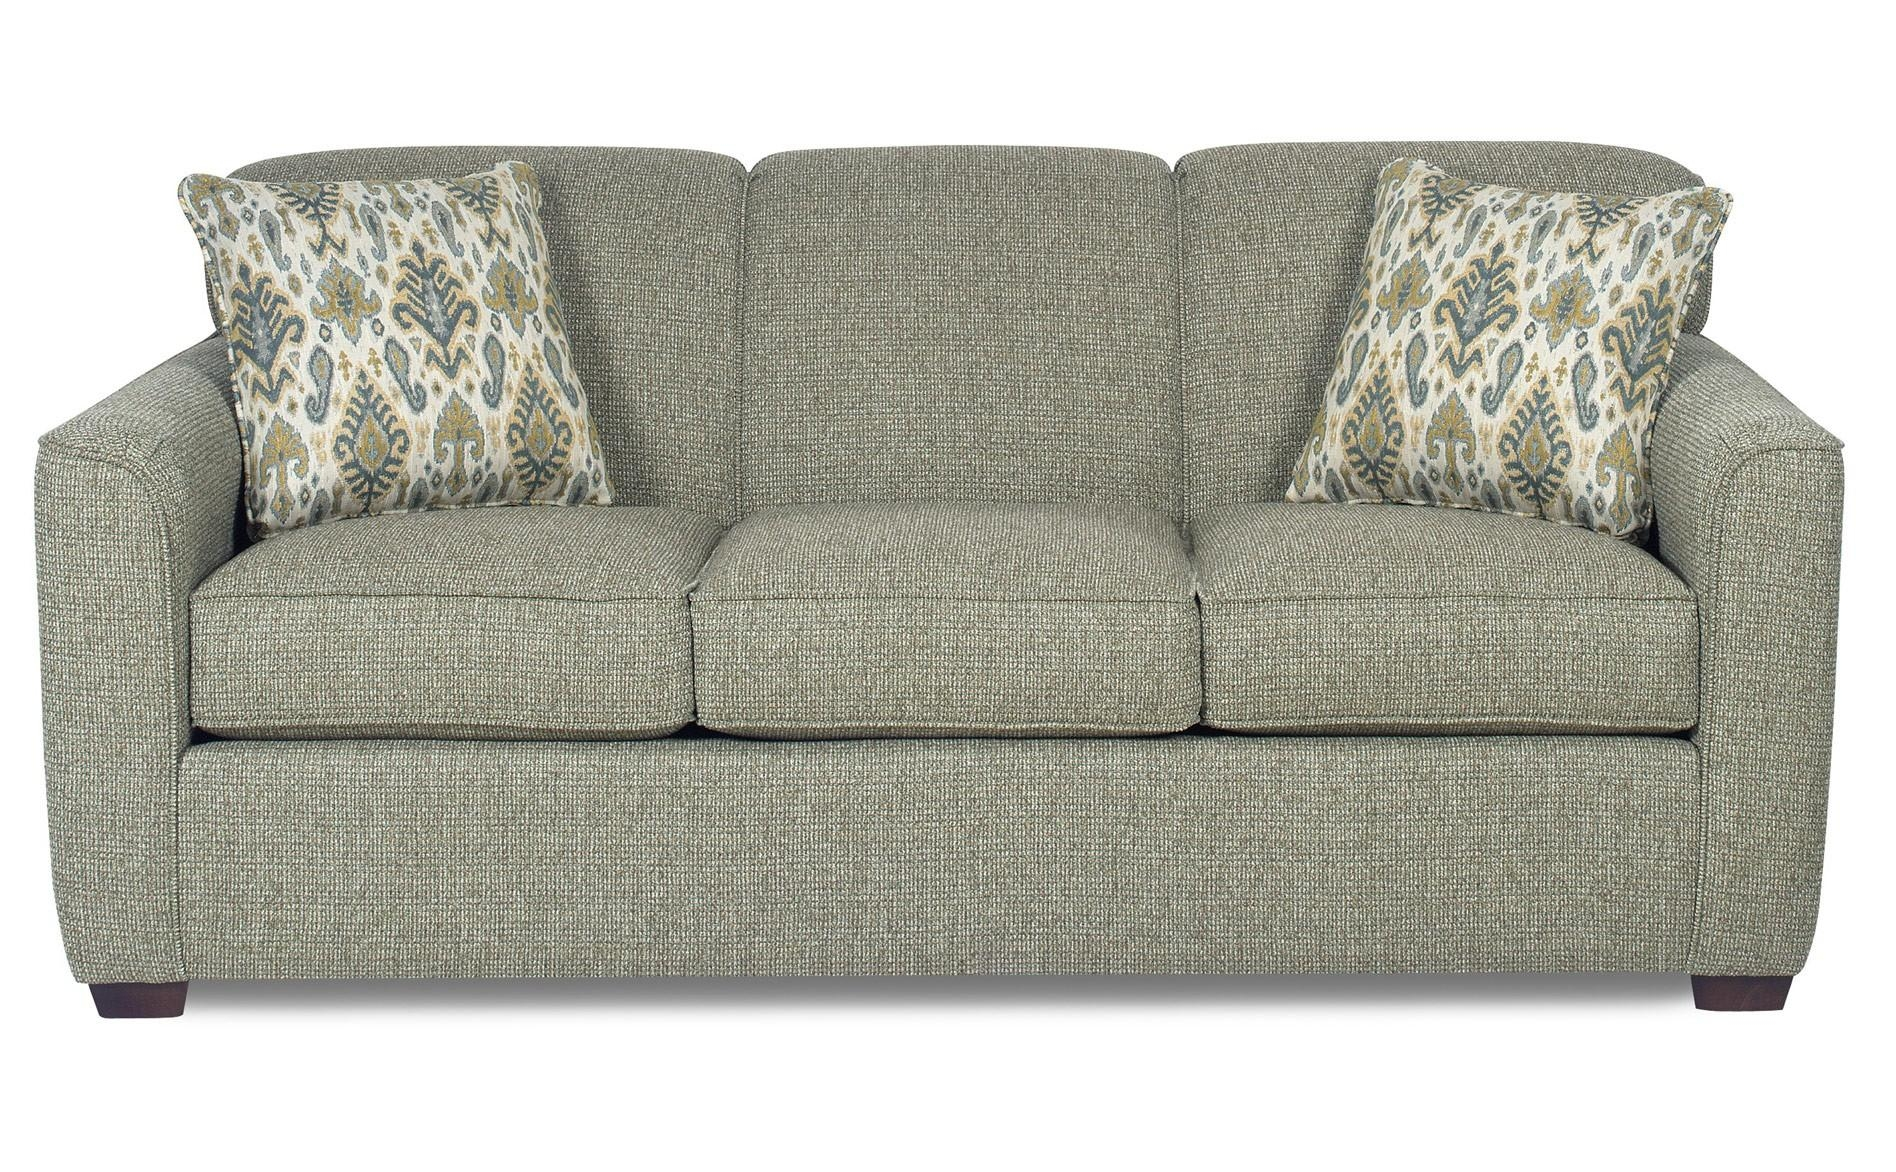 Sealy Sofa Intended For Sealy Sofas (Image 18 of 20)